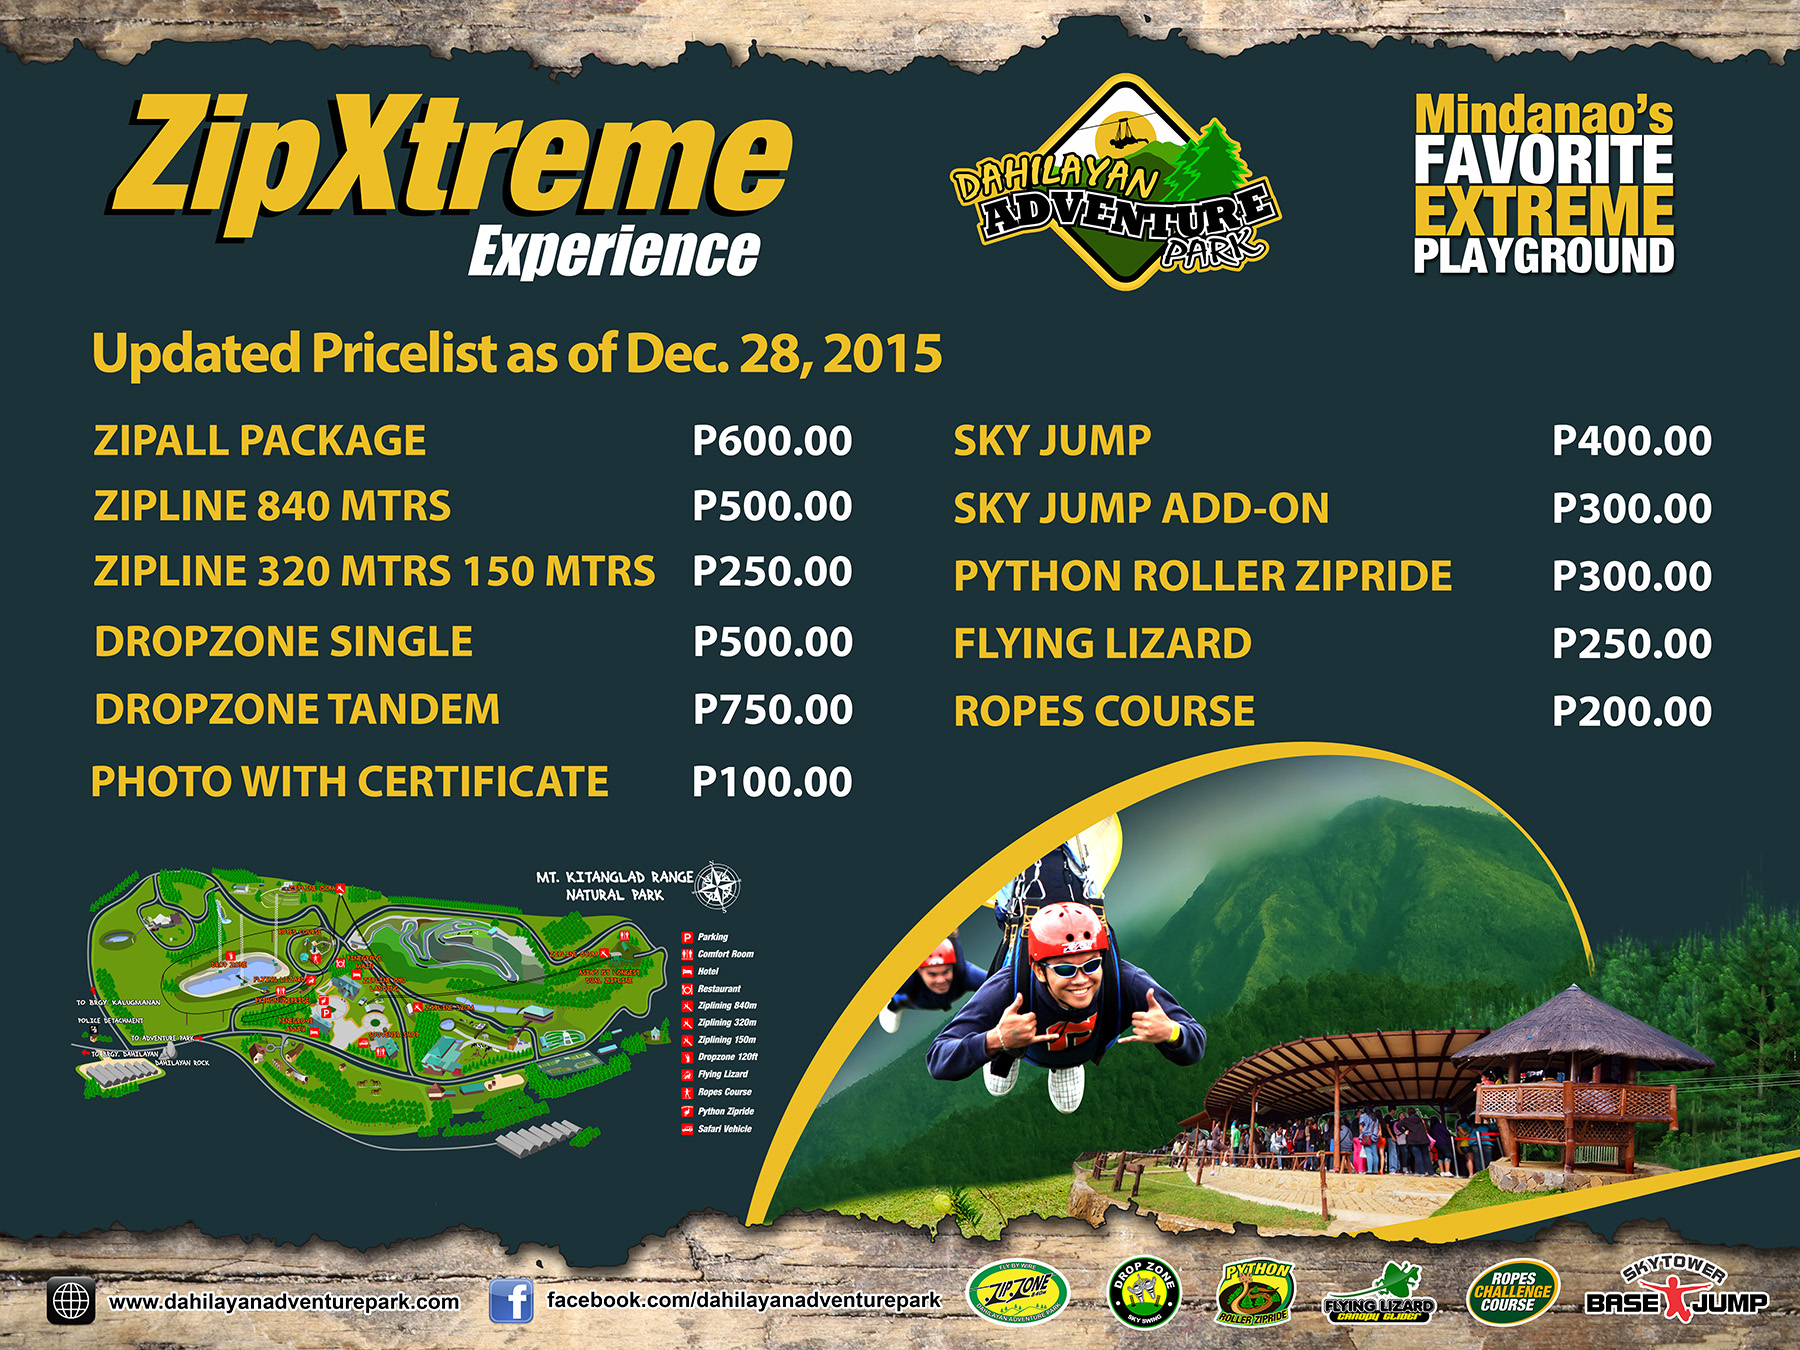 Travel Guide to Dahilayan Adventure Park, Bukidnon with Sample Itinerary 00